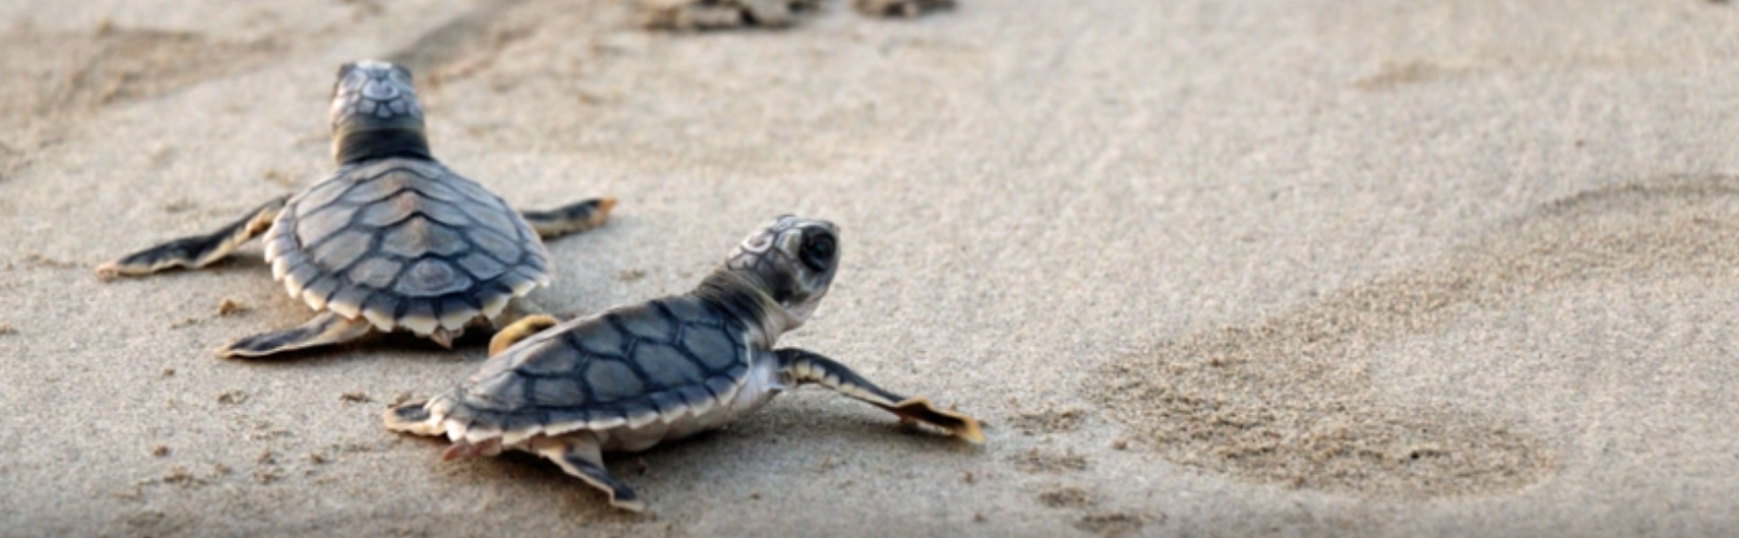 Turtle hatchlings attracted to artificial light like moths to a flame